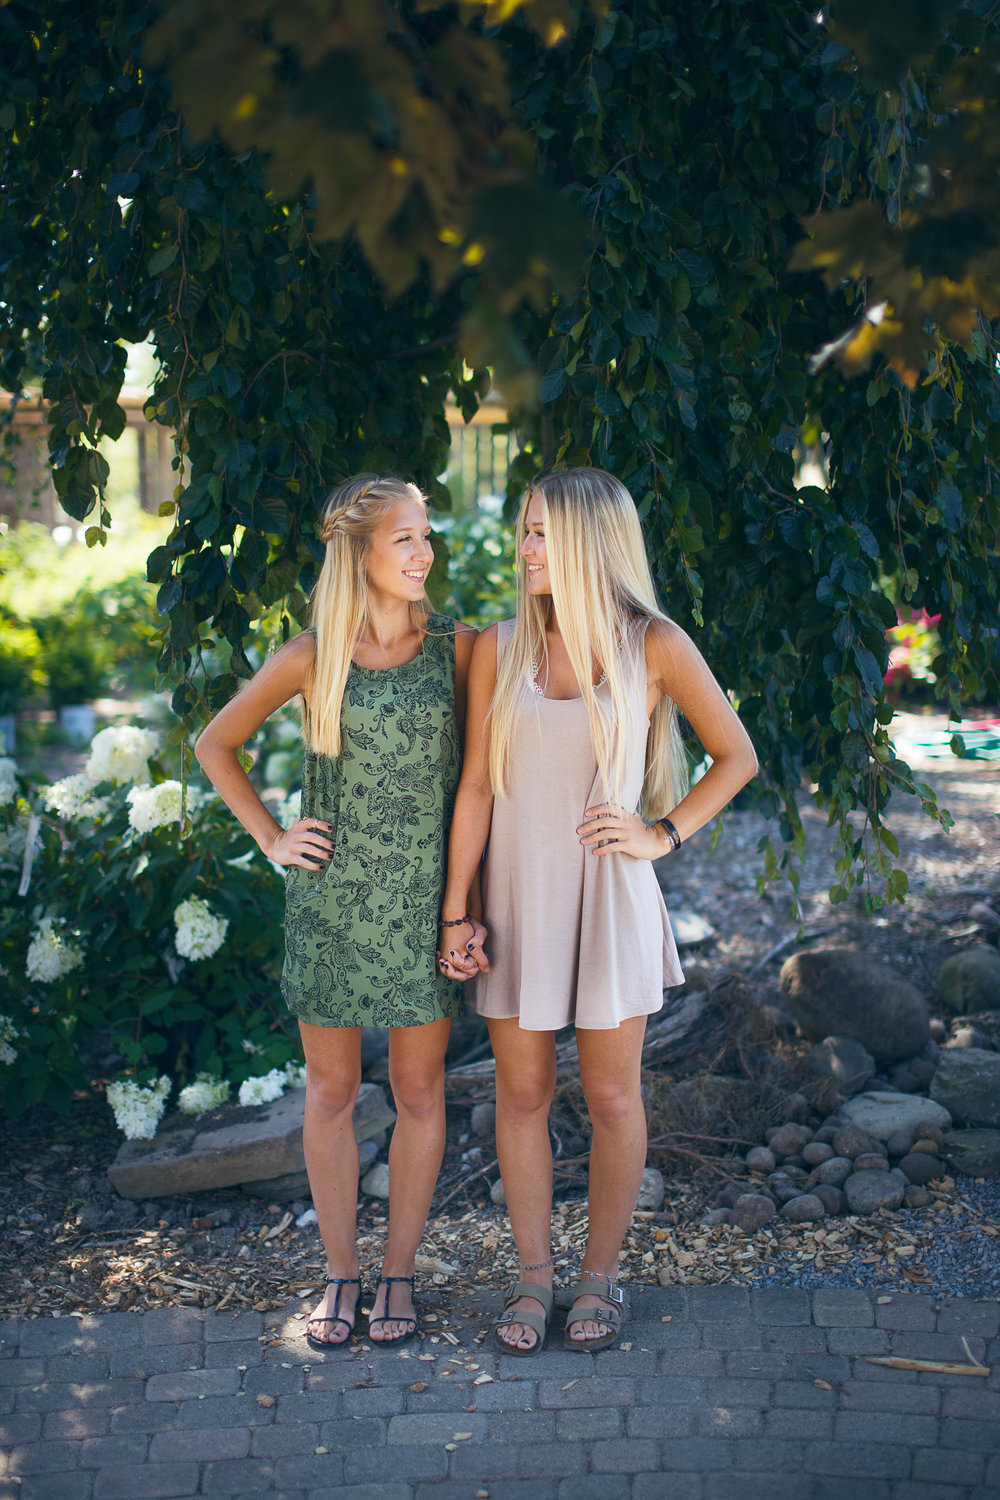 Summer Dress Senior Portraits Twins